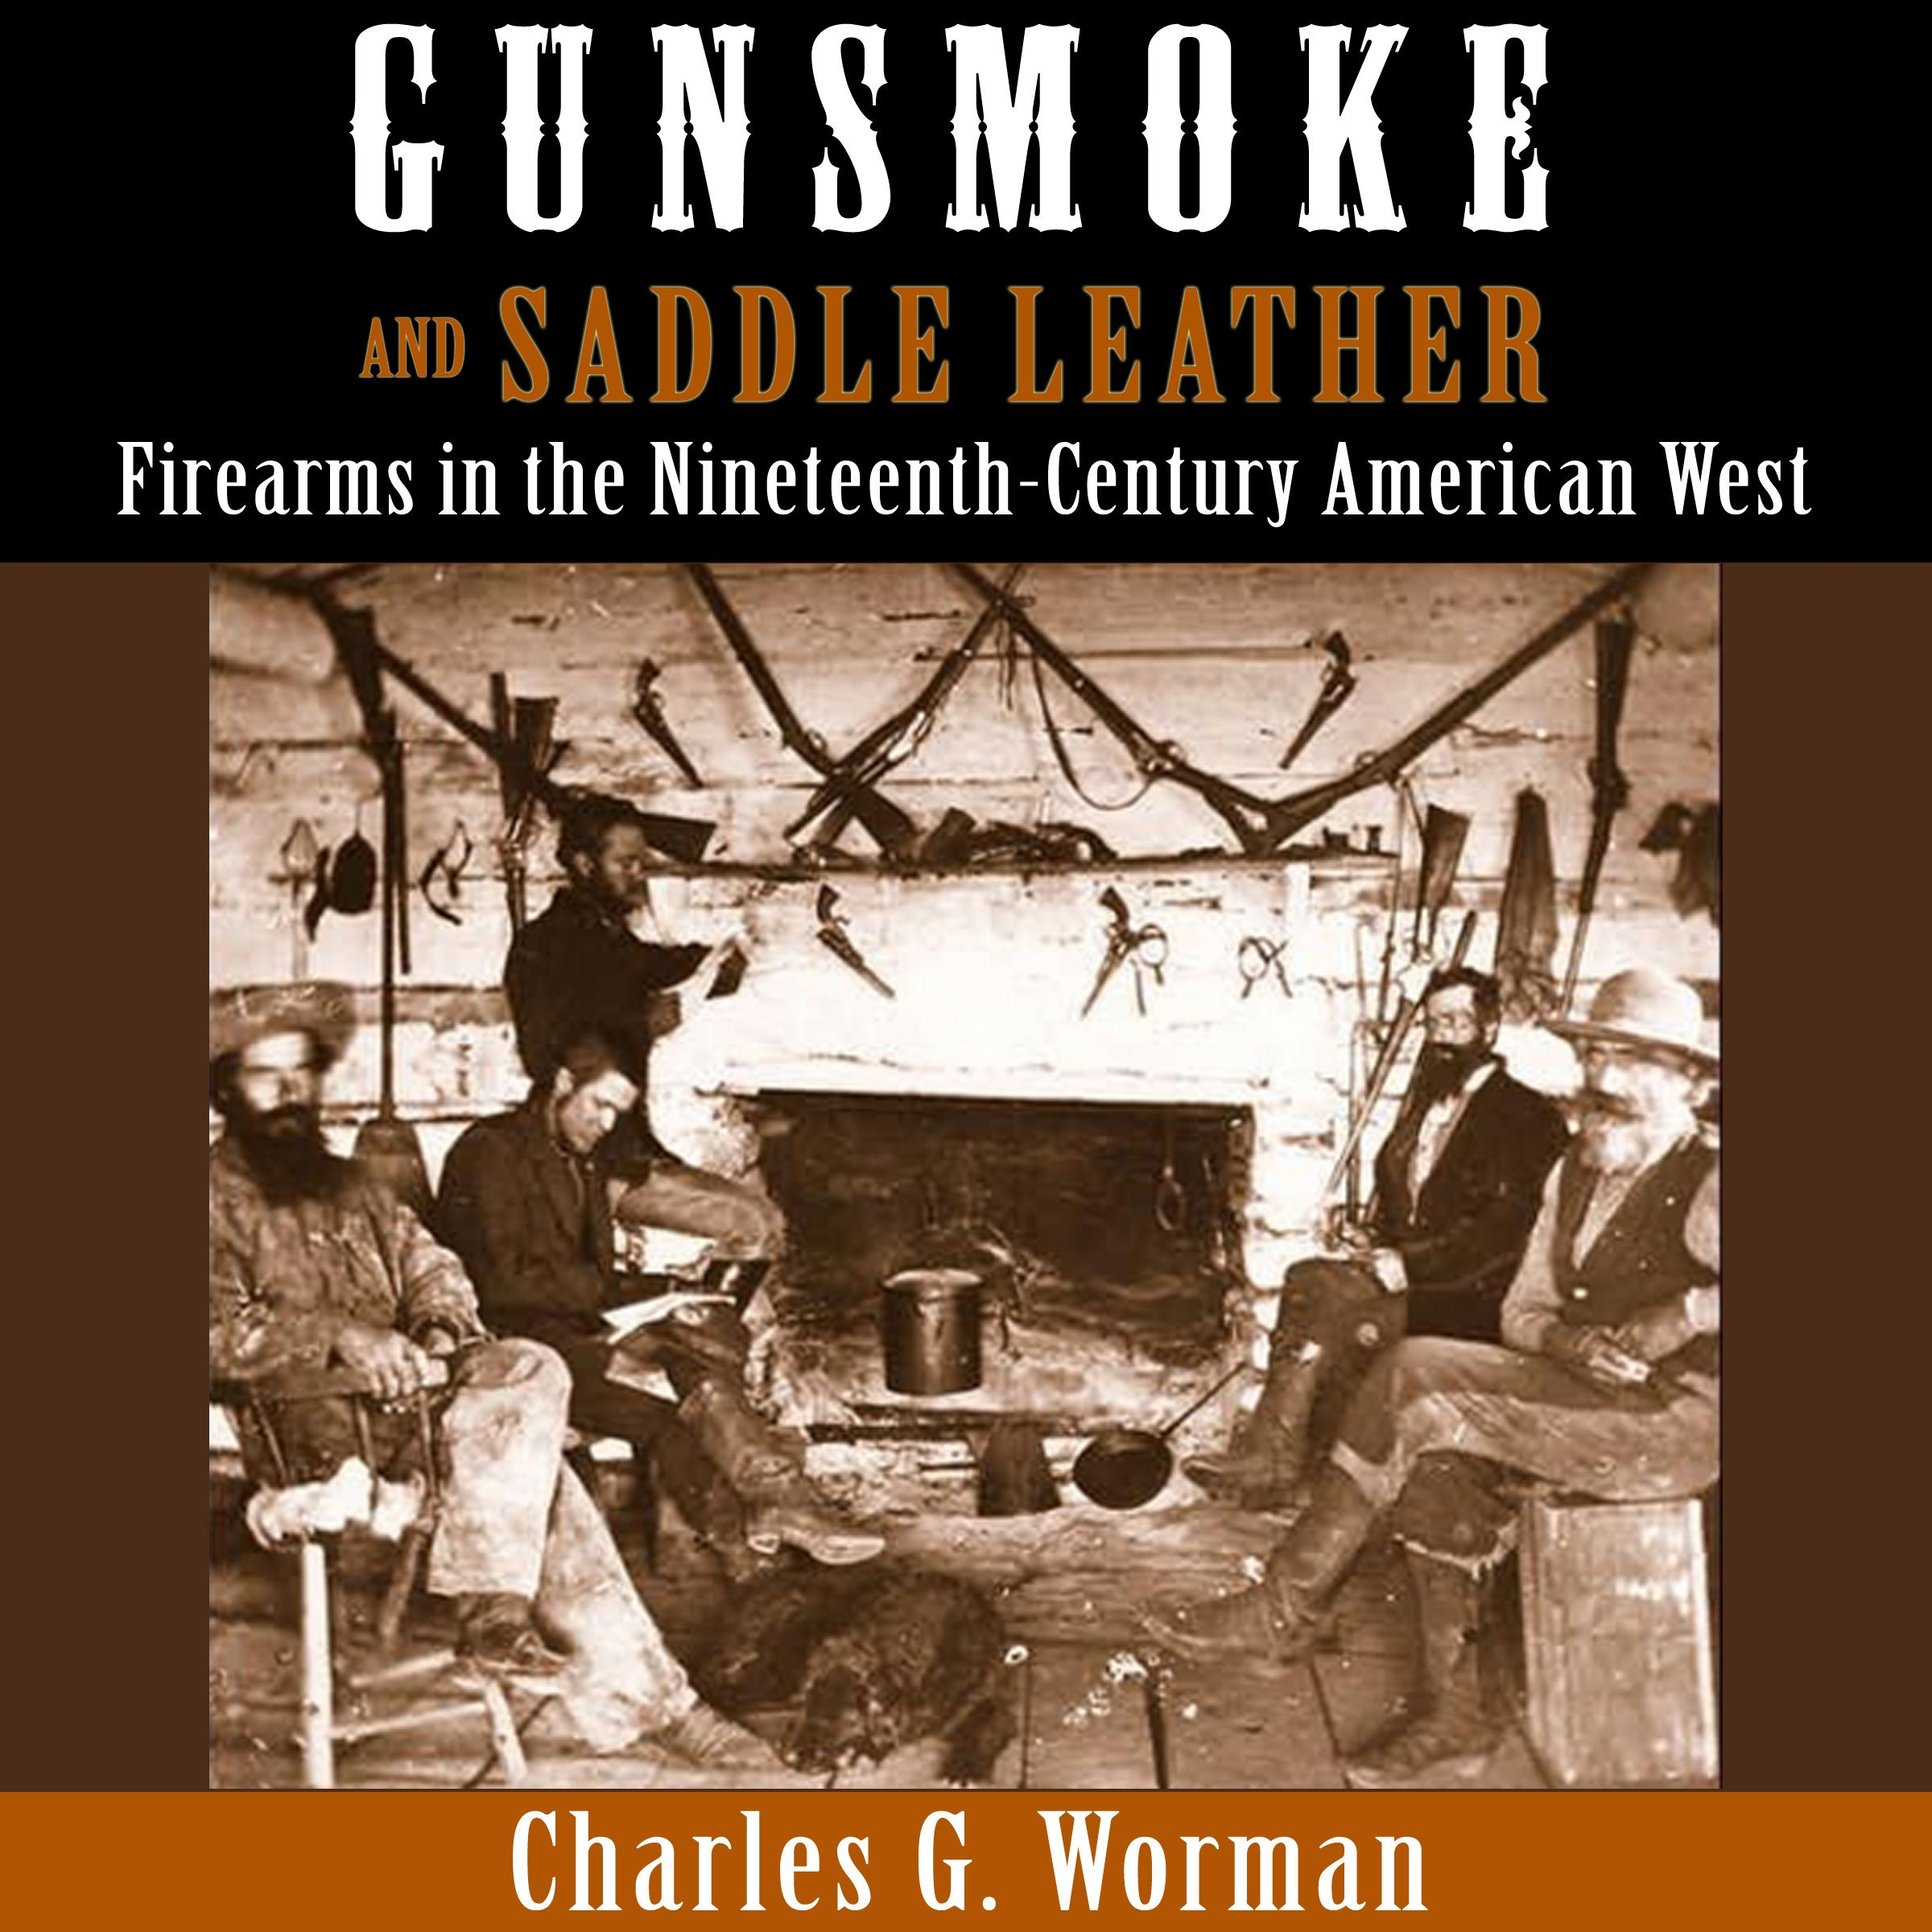 Gunsmoke and Saddle Leather: Firearms in the Nineteenth-Century American West